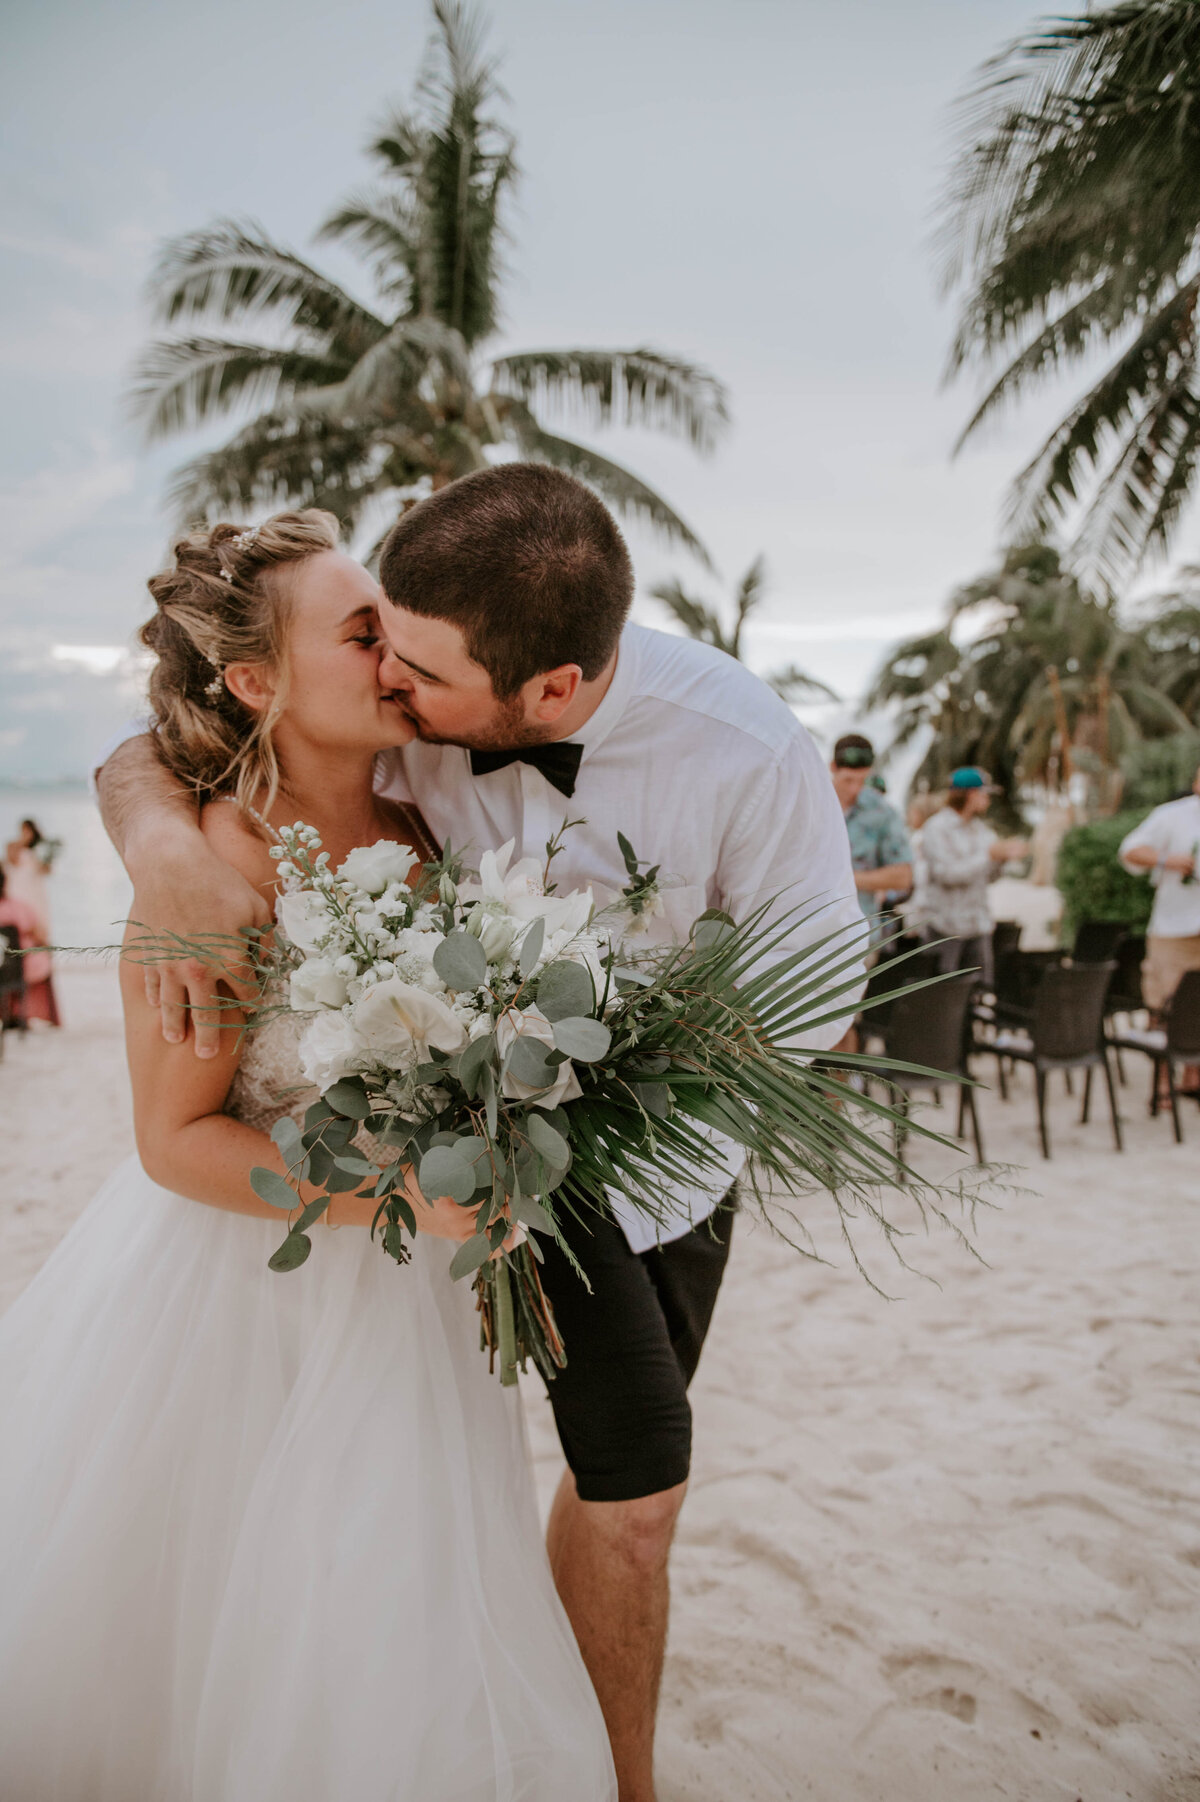 isla-mujeres-wedding-photographer-guthrie-zama-mexico-tulum-cancun-beach-destination-1305